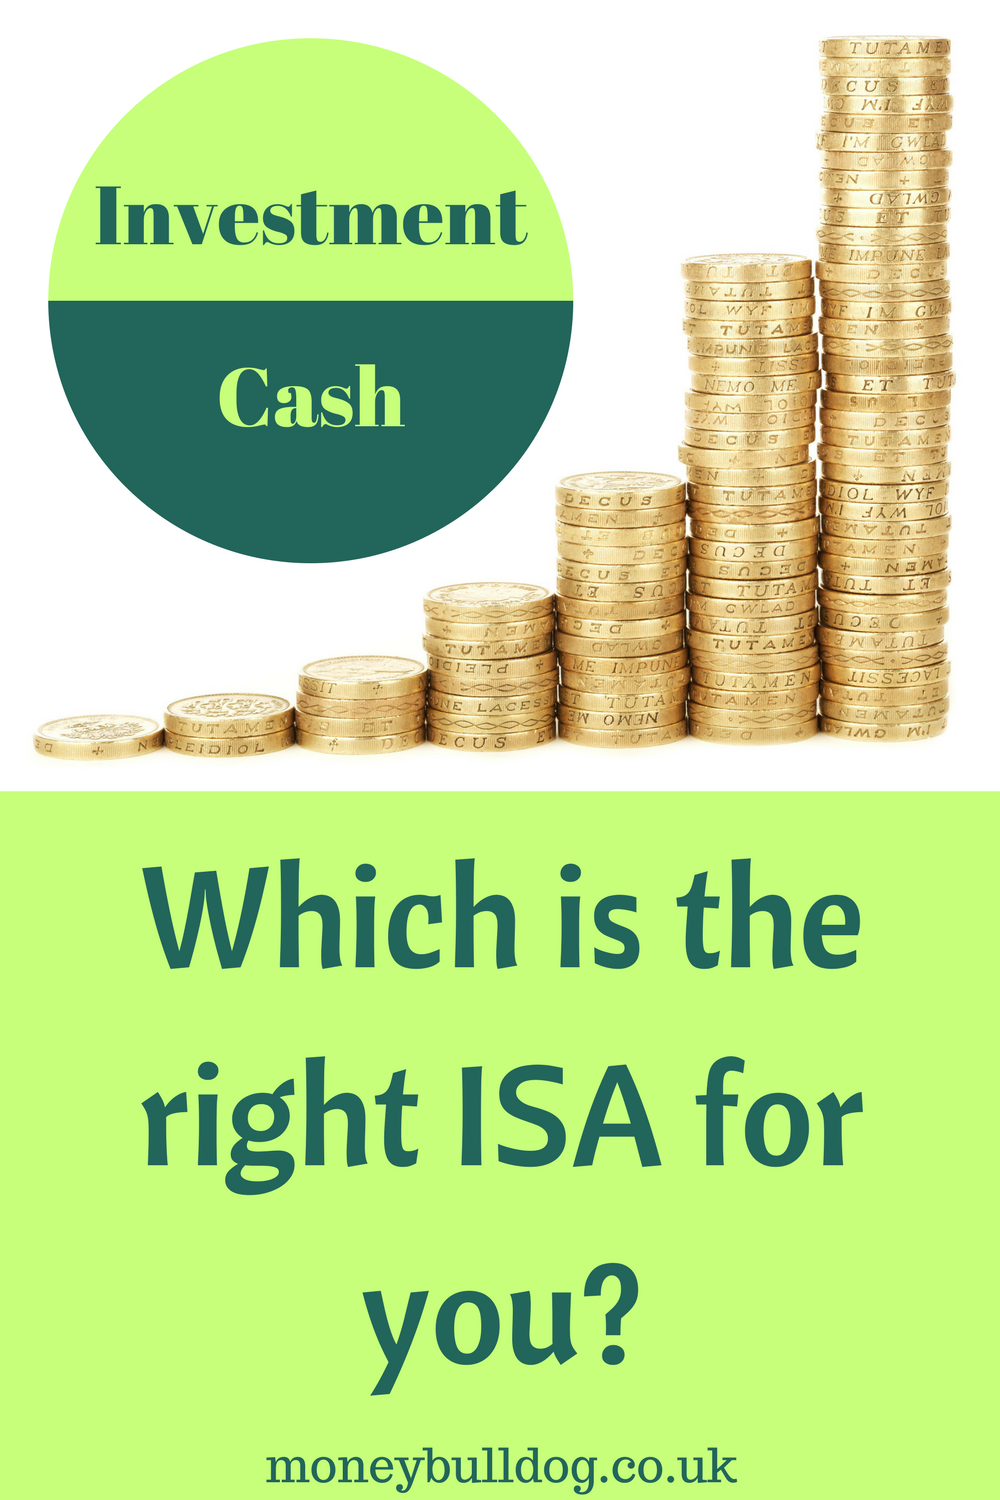 Investment Vs Cash - Which Is Right ISA for You_